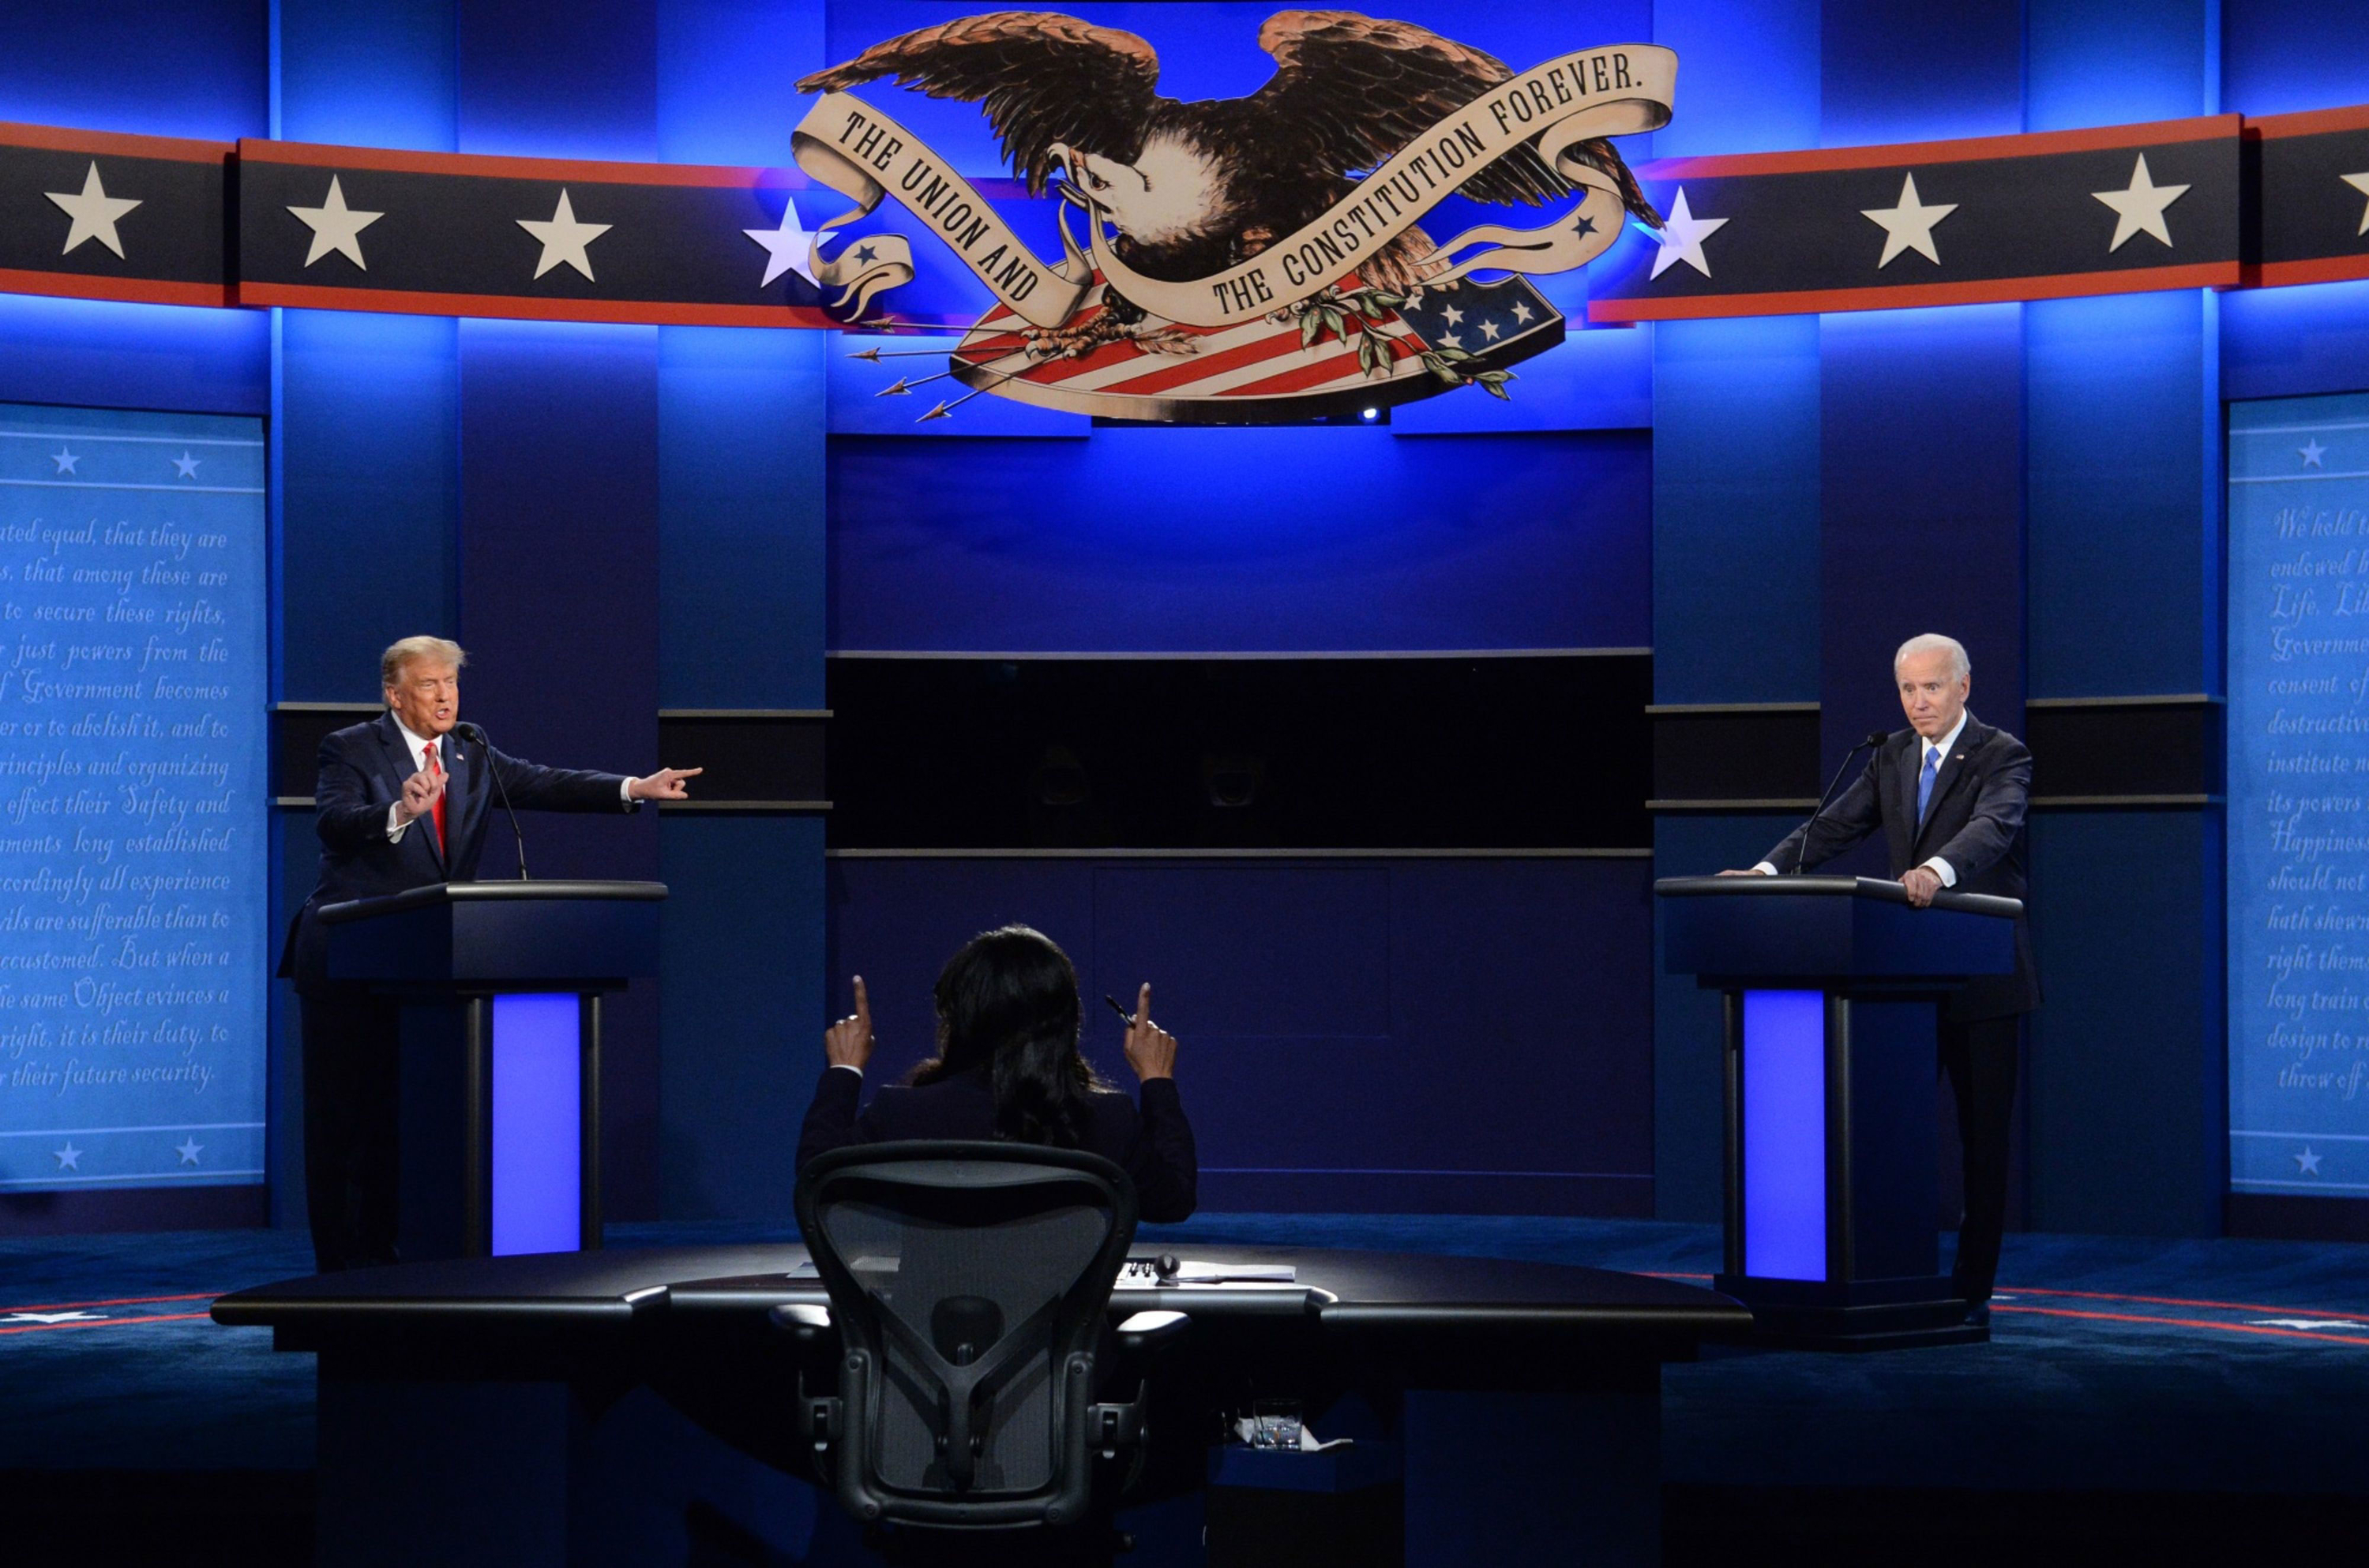 More subdued presidential debate sees drop-off in viewers